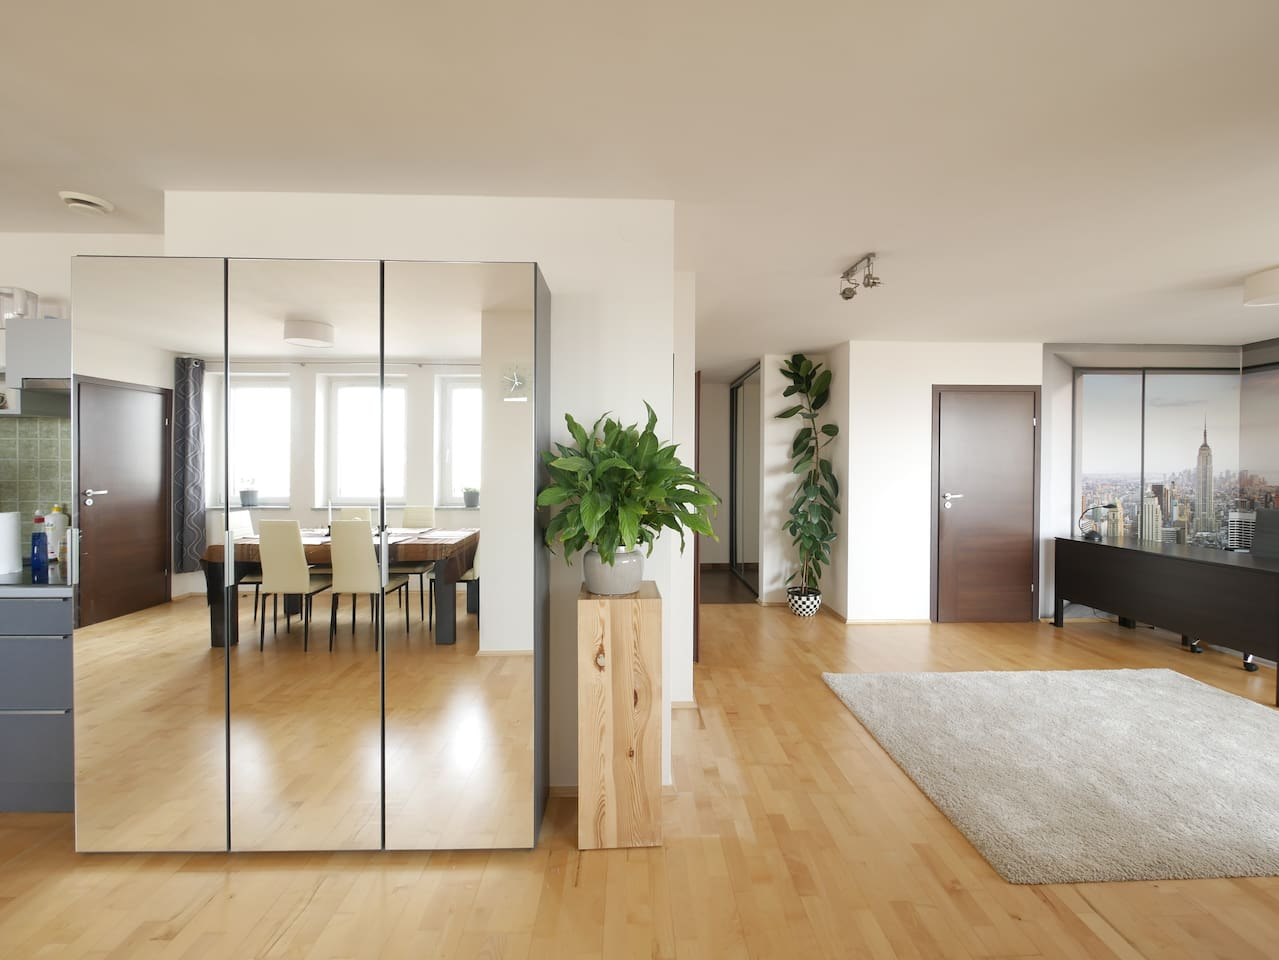 Super bright, big and cozy apartment with wonderful horizontal views around the city